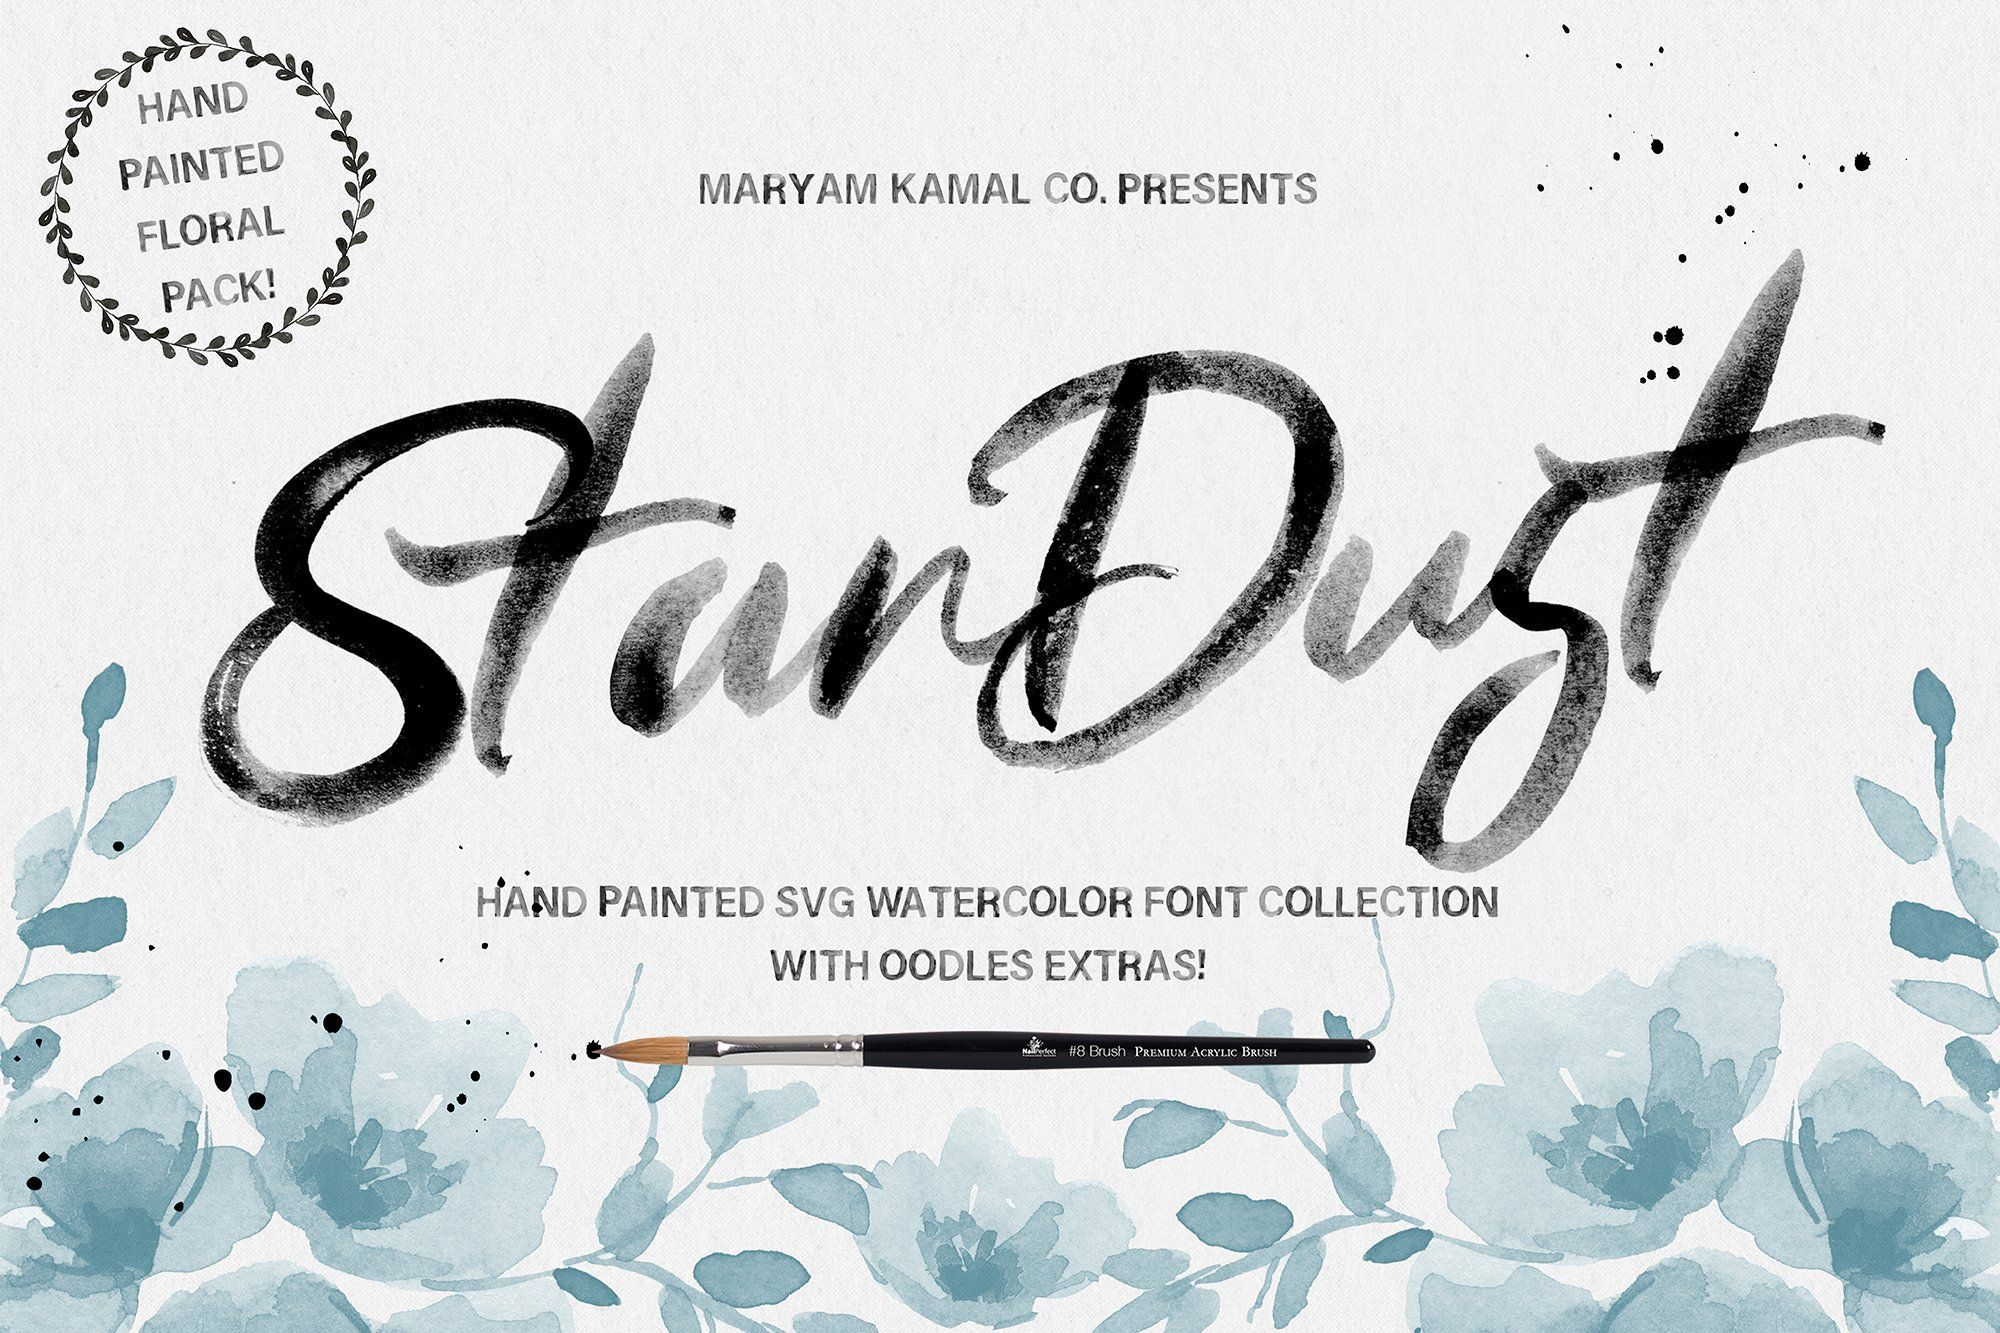 Stardust Font Collection Watercolor Font Lettering Watercolor